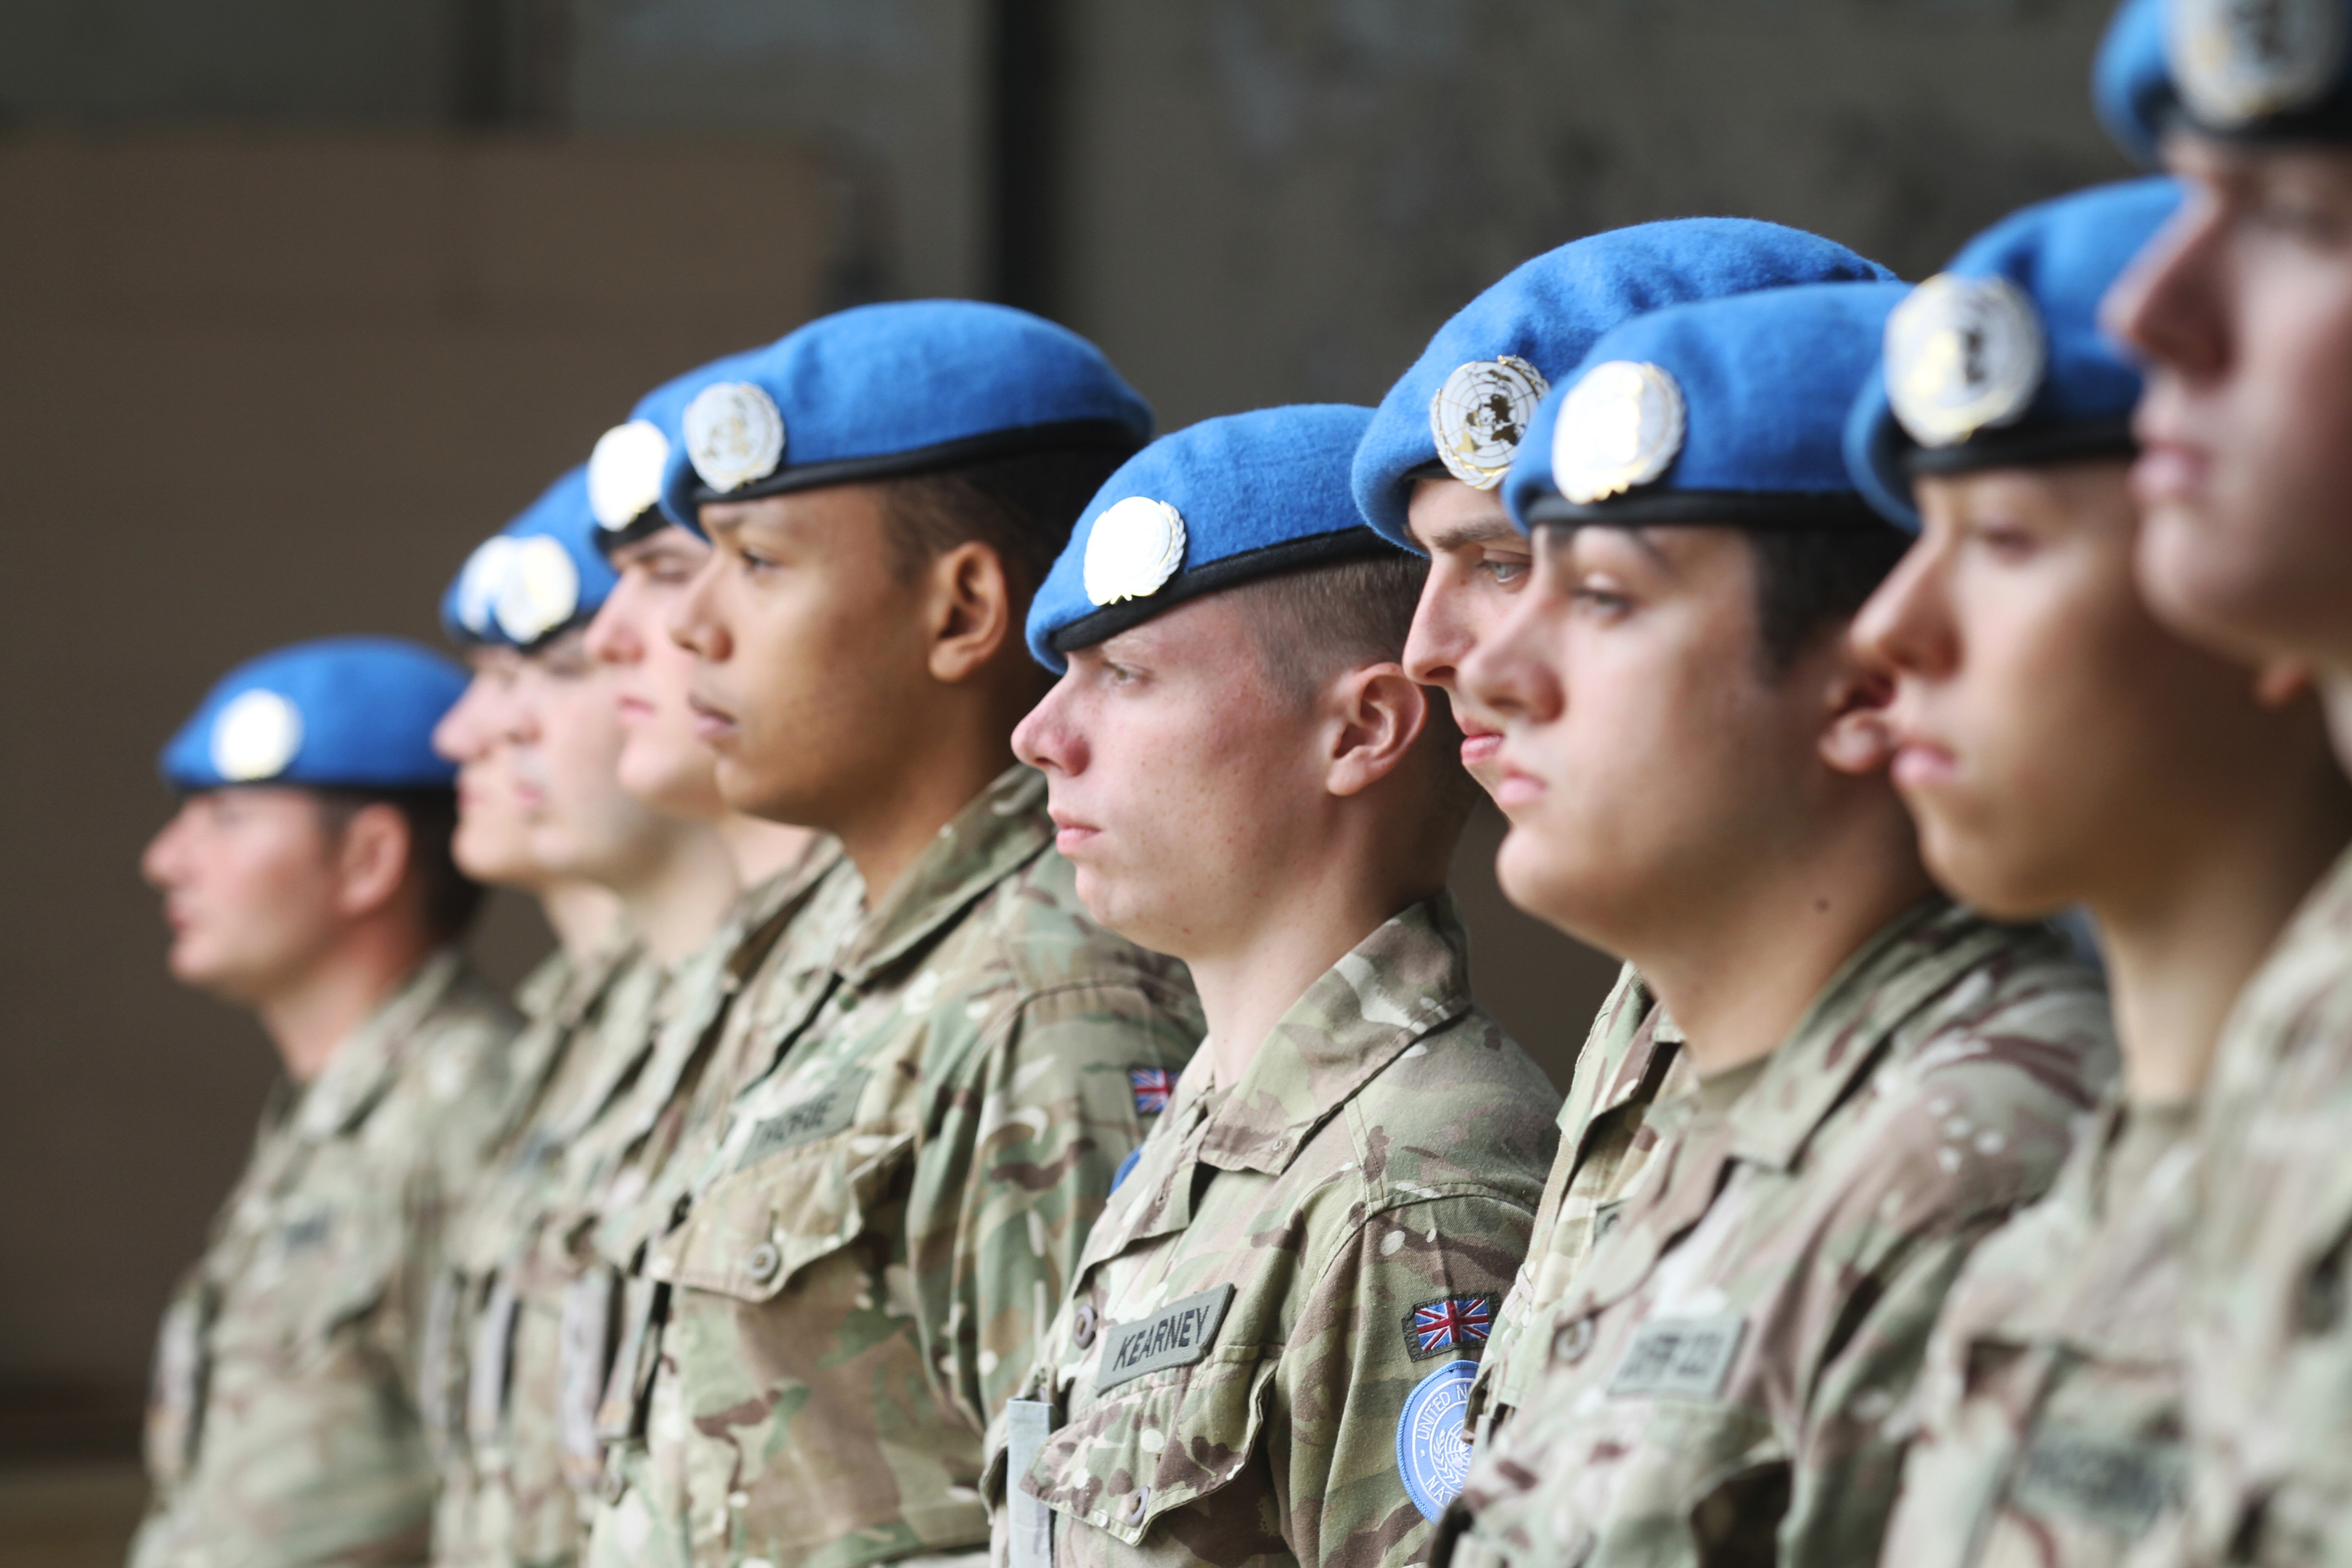 The soldiers with their UN blue berets and badges.